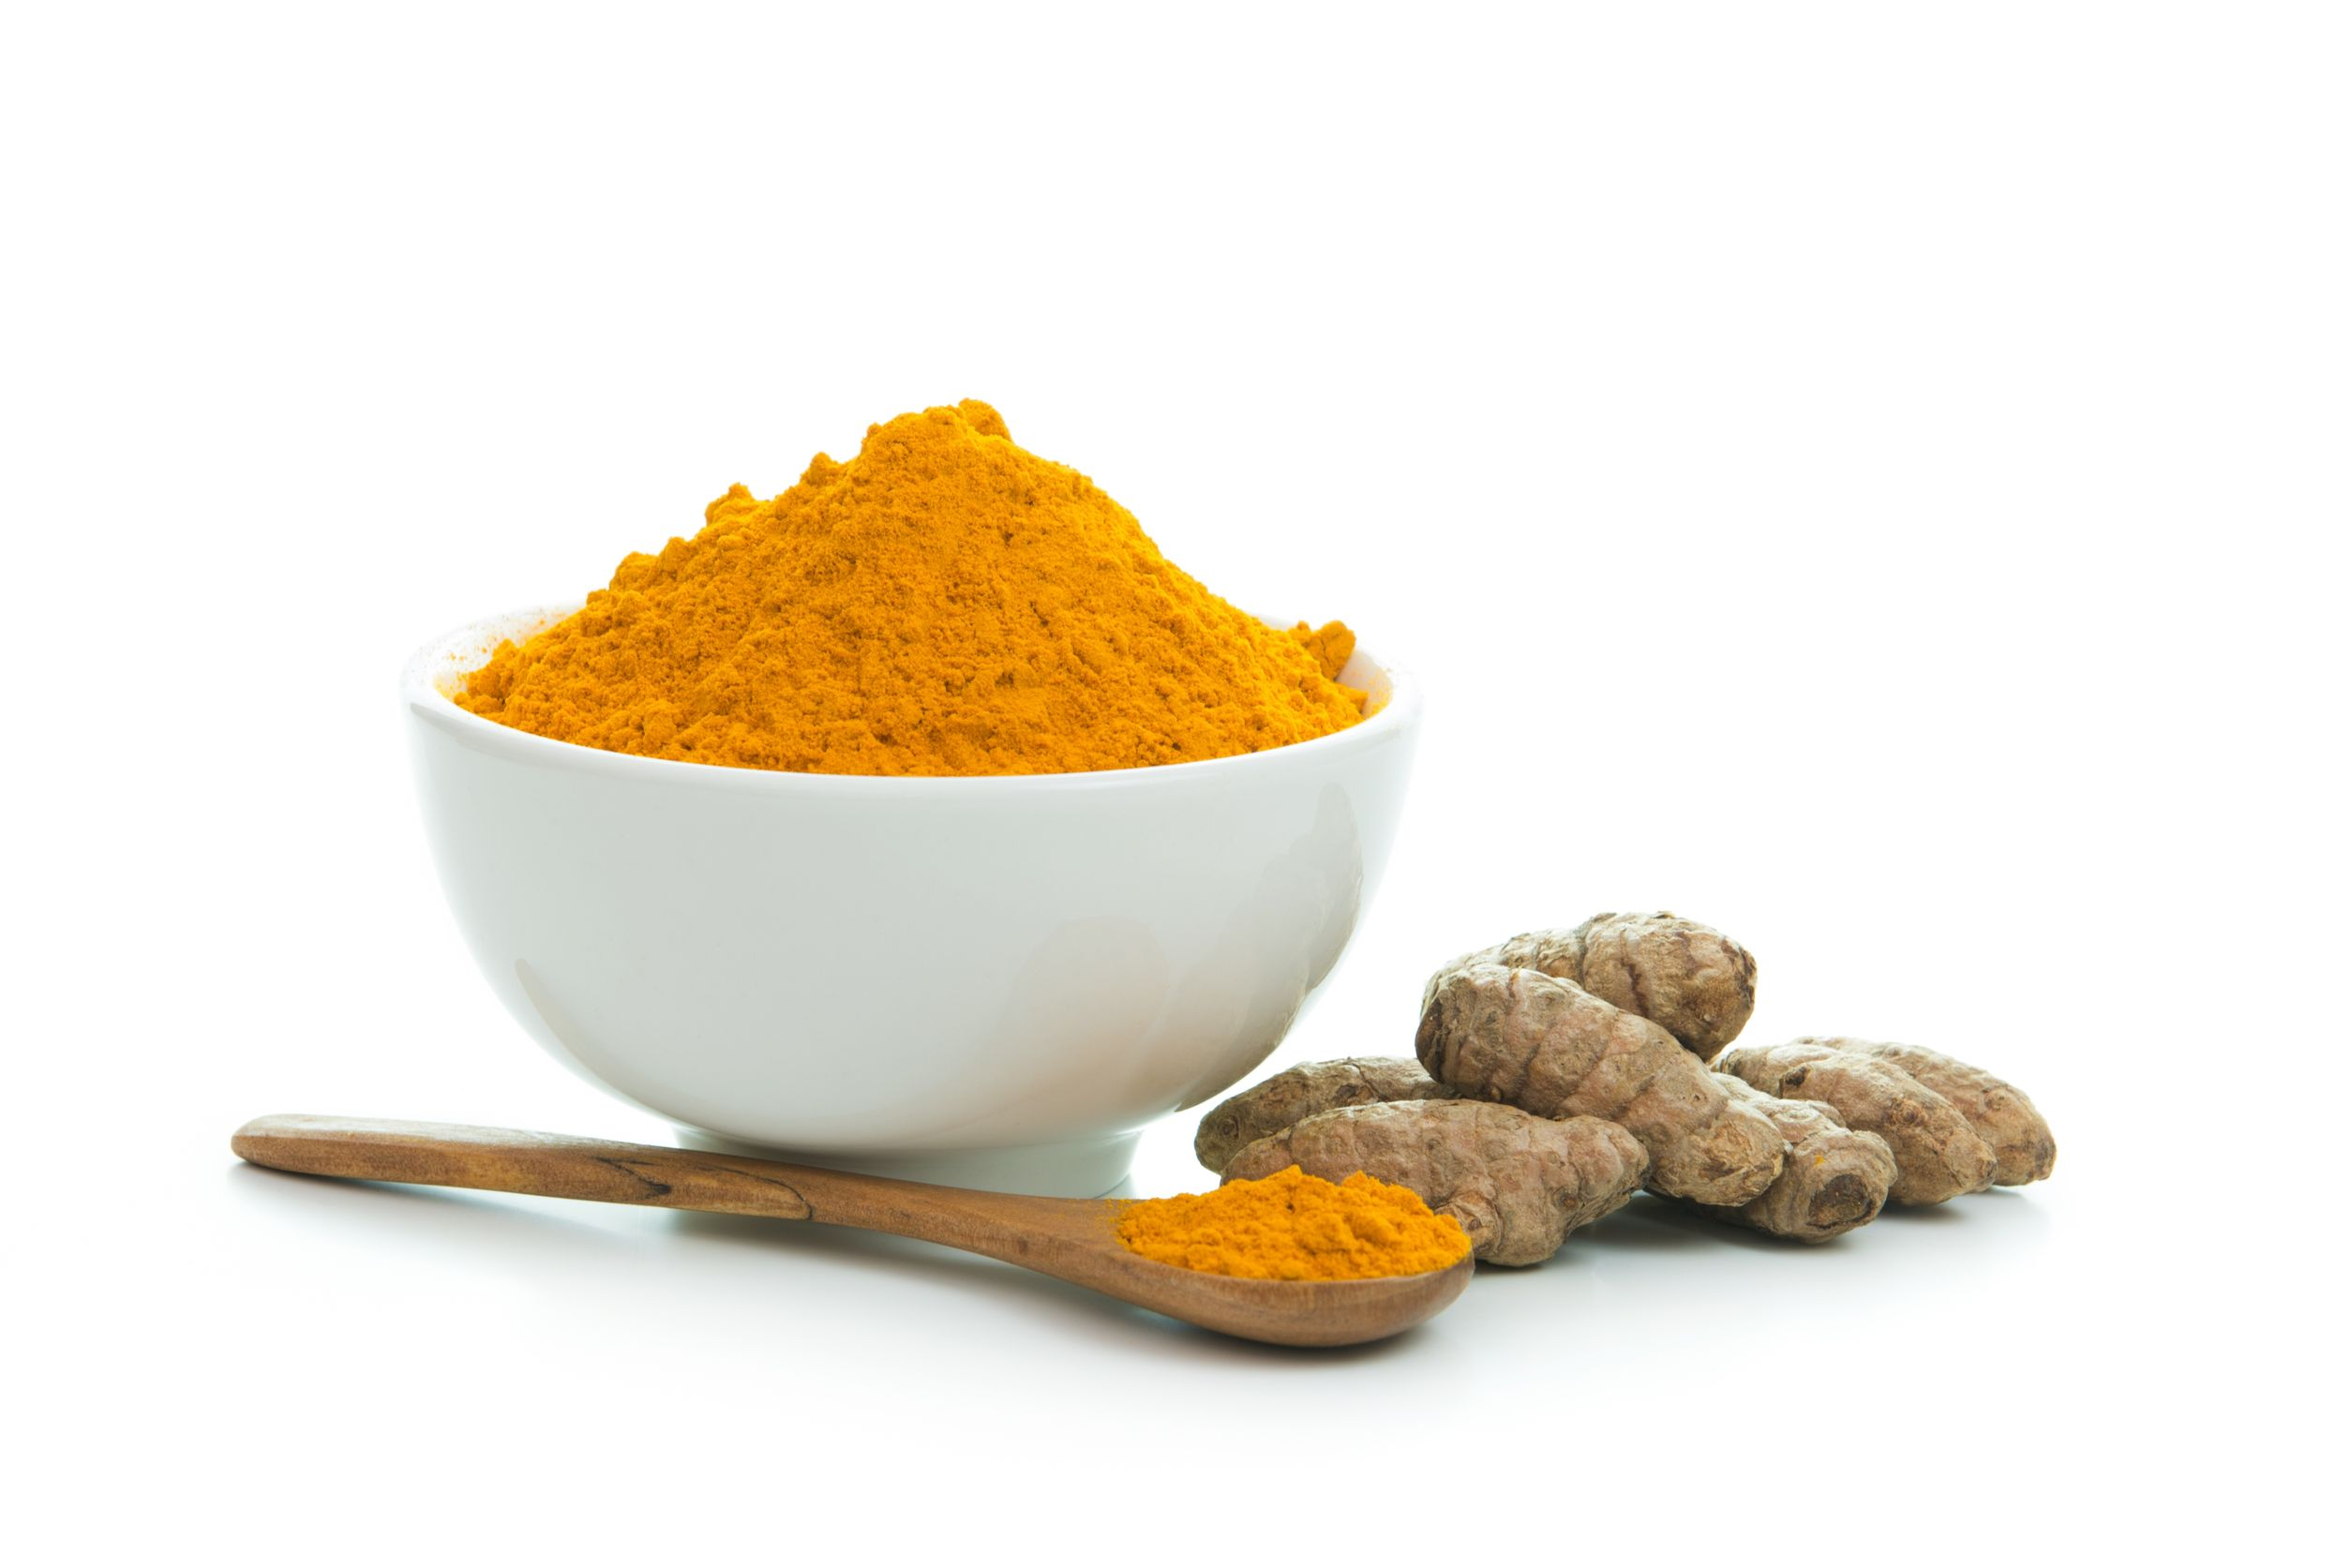 Turmeric: The Spice of Long Life